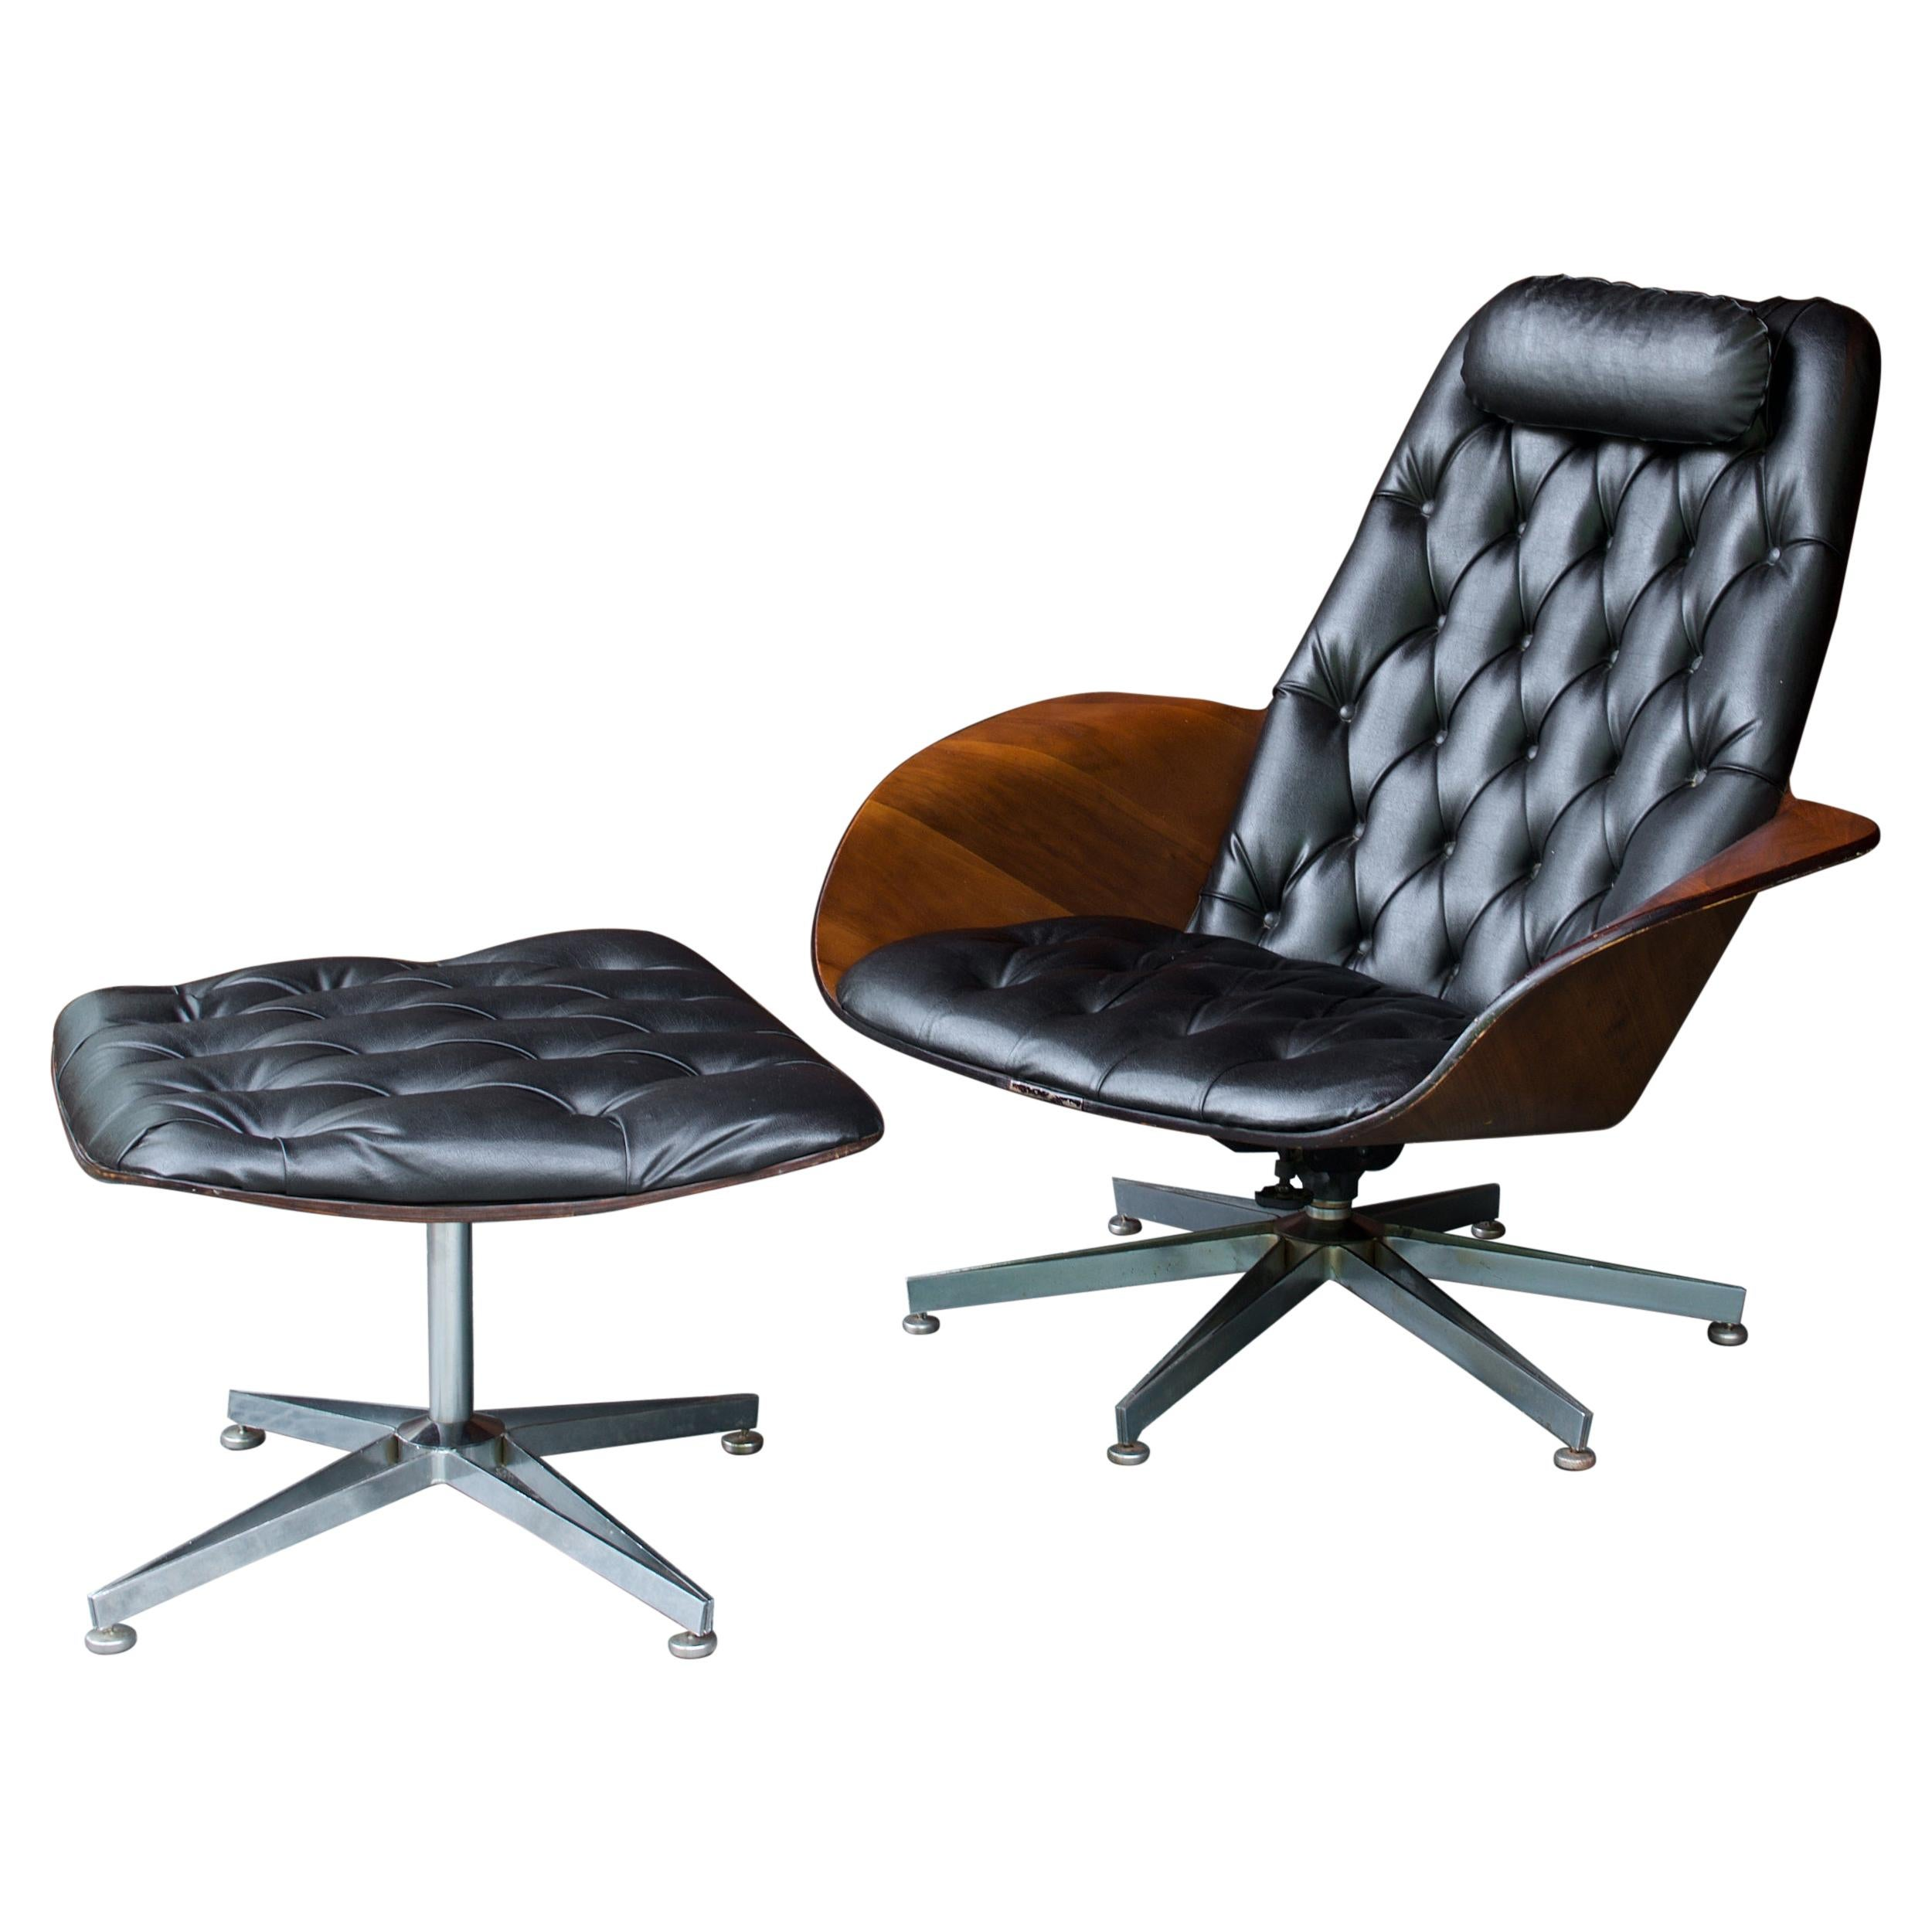 1960s Plycraft Mr.Chair Lounge Chair Ottoman Vintage Mid-Century Icon Mulhauser